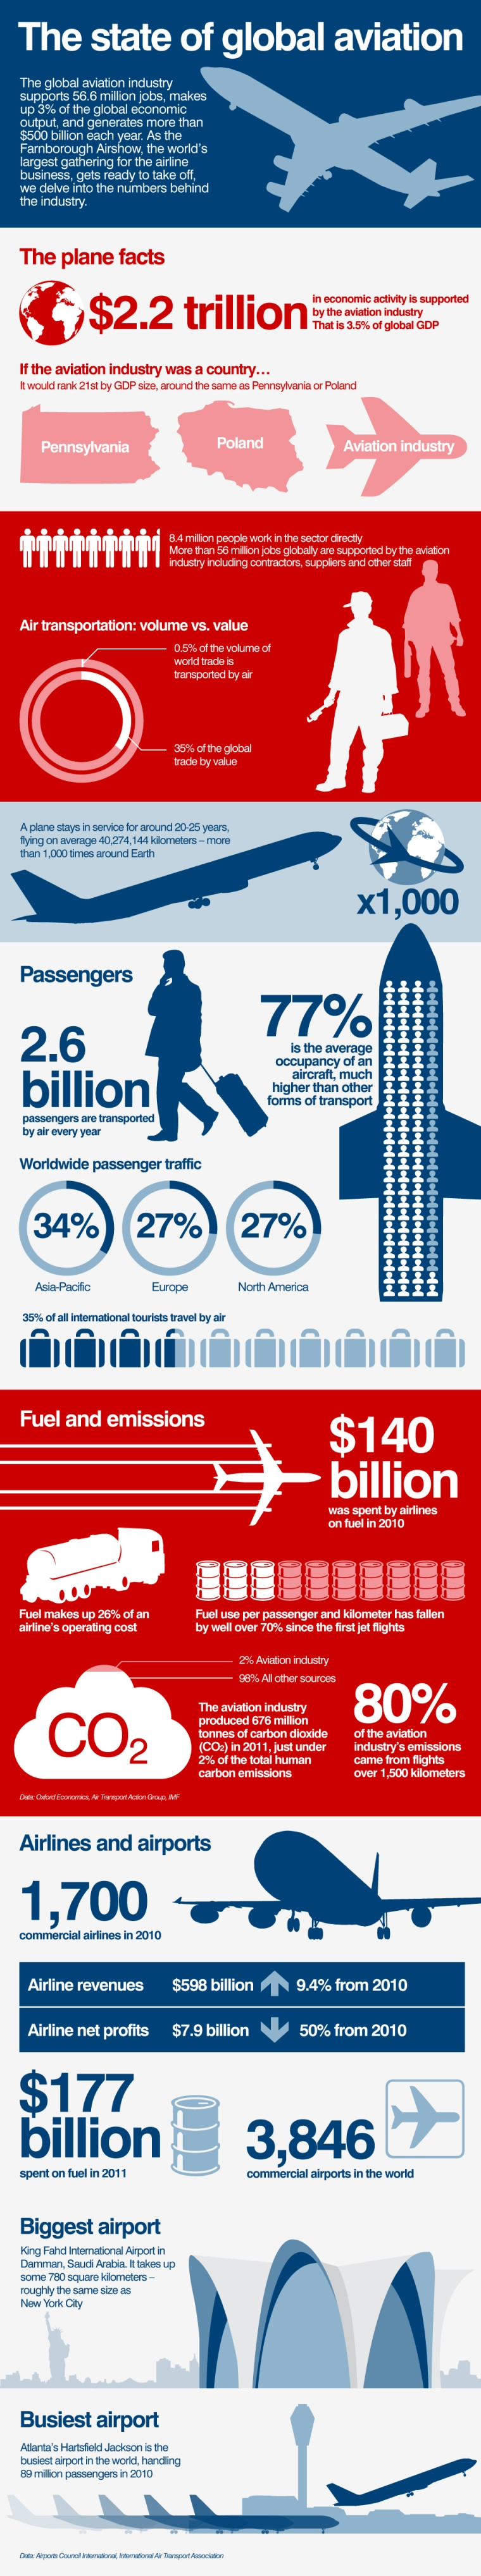 3. The State of Global Aviation